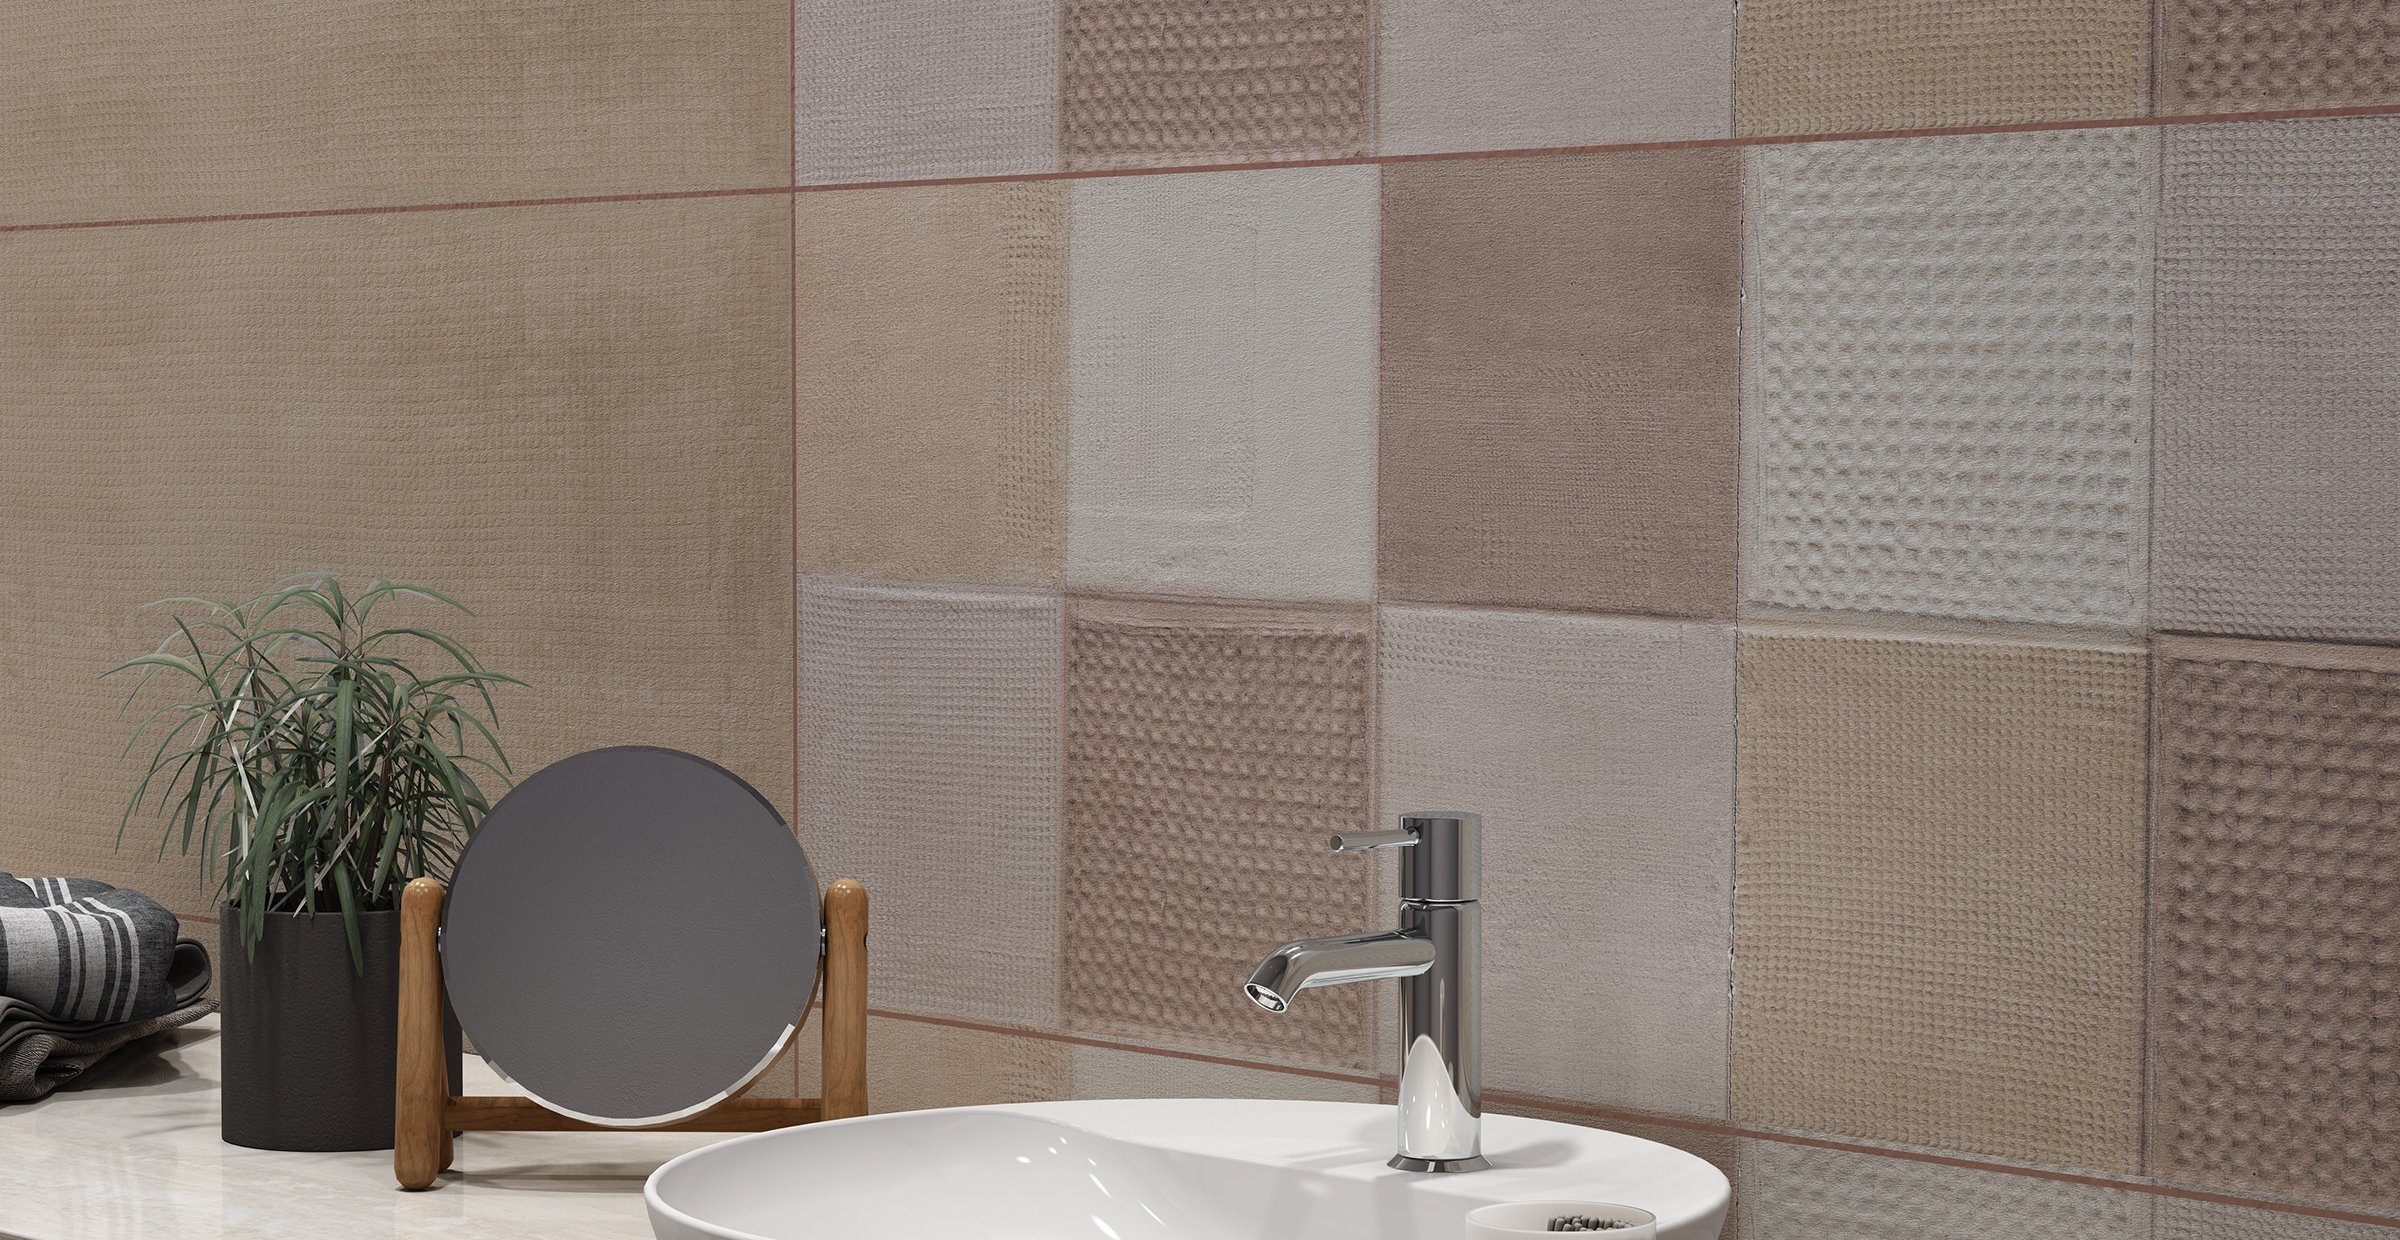 pique Brown, Grey, Mix and White tiles Modern style Bathroom